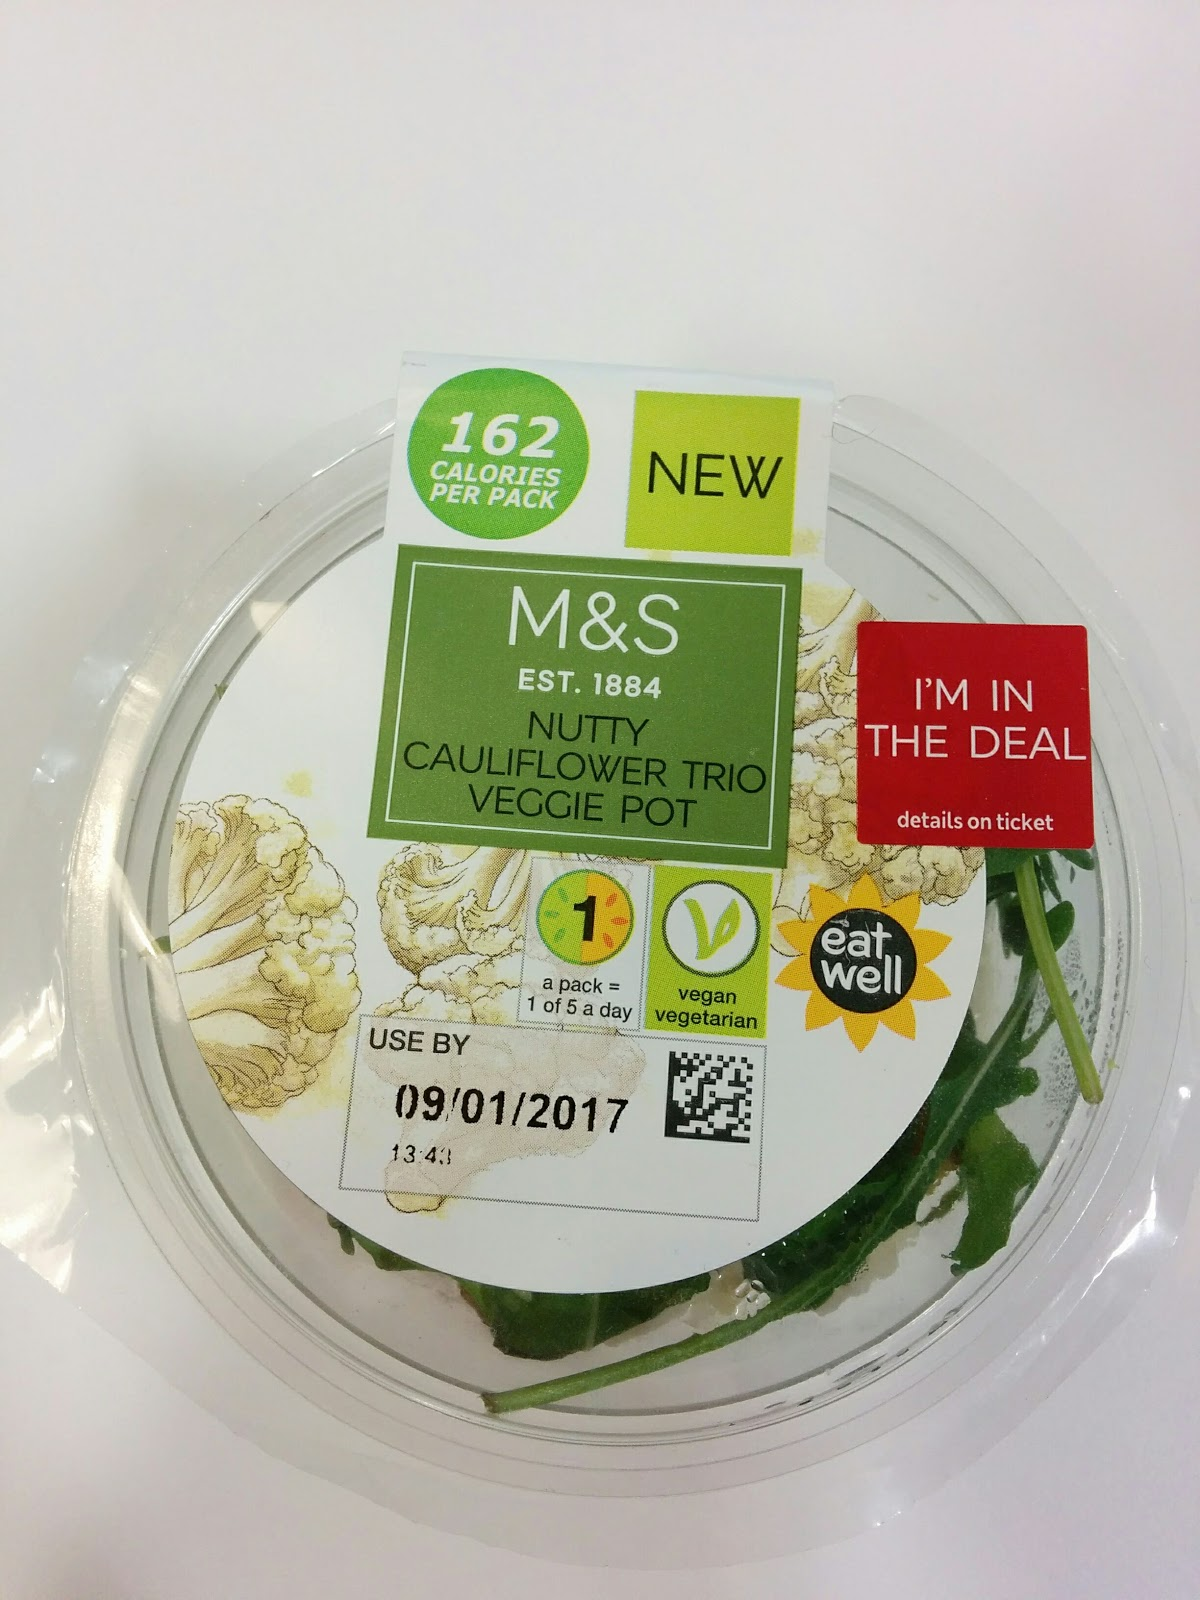 Vegetarian meal deals